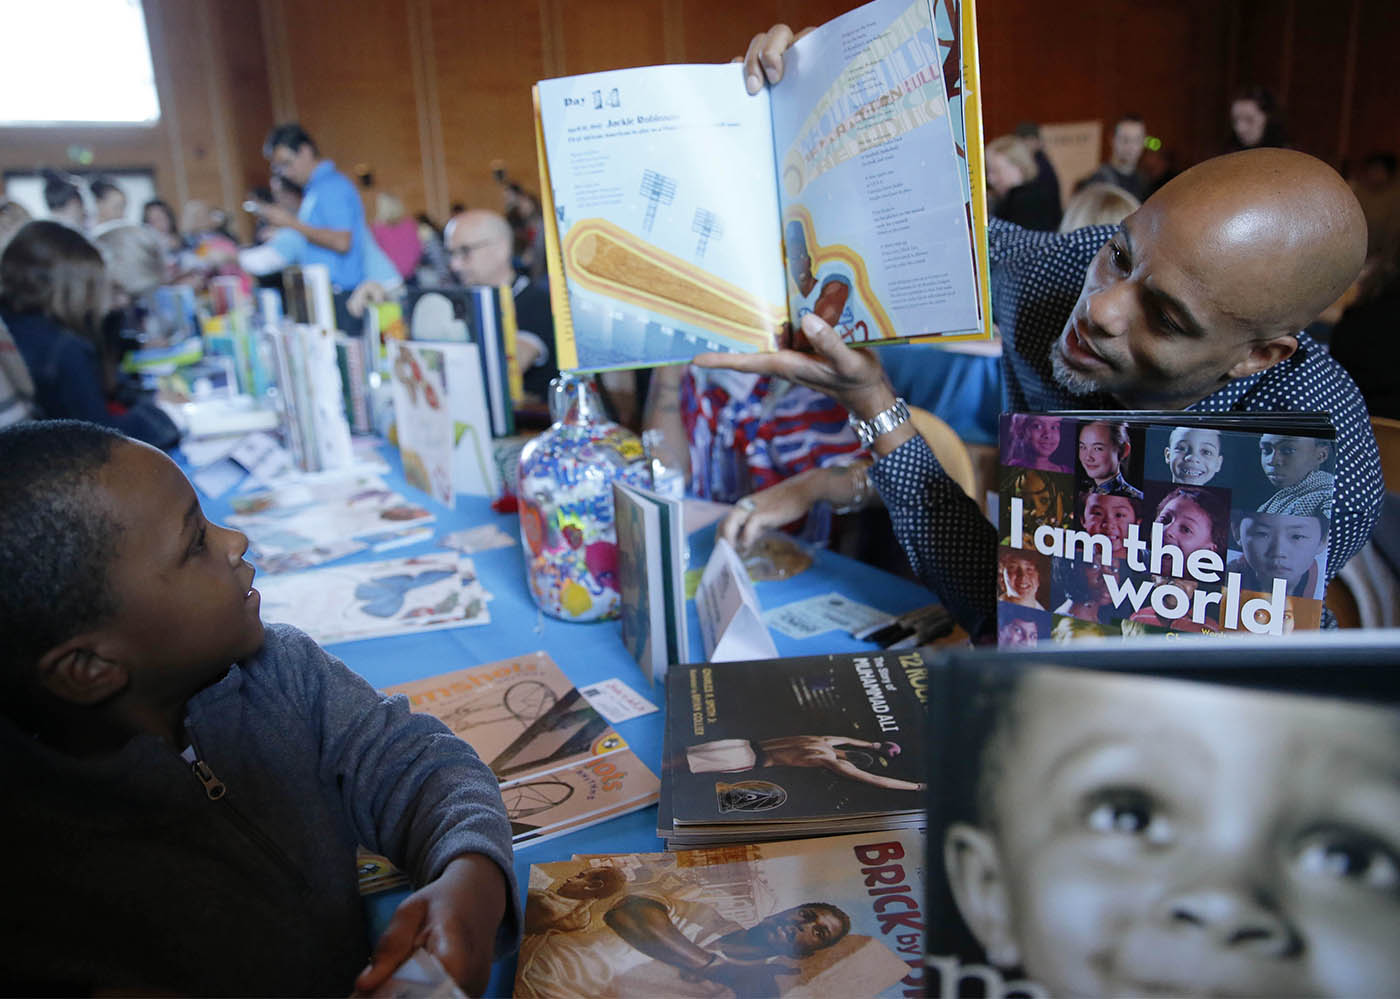 """Author Charles R. Smith Jr. holds up a copy of his book """"28 Days: Moments in Black History that Changed the World"""" while telling young Joshua Bell, 4, of Buffalo about baseball player Hank Aaron at the WNY Children's Book Expo at Kleinhan's Hall, Sunday, Nov. 6, 2016. (Derek Gee/Buffalo News)"""